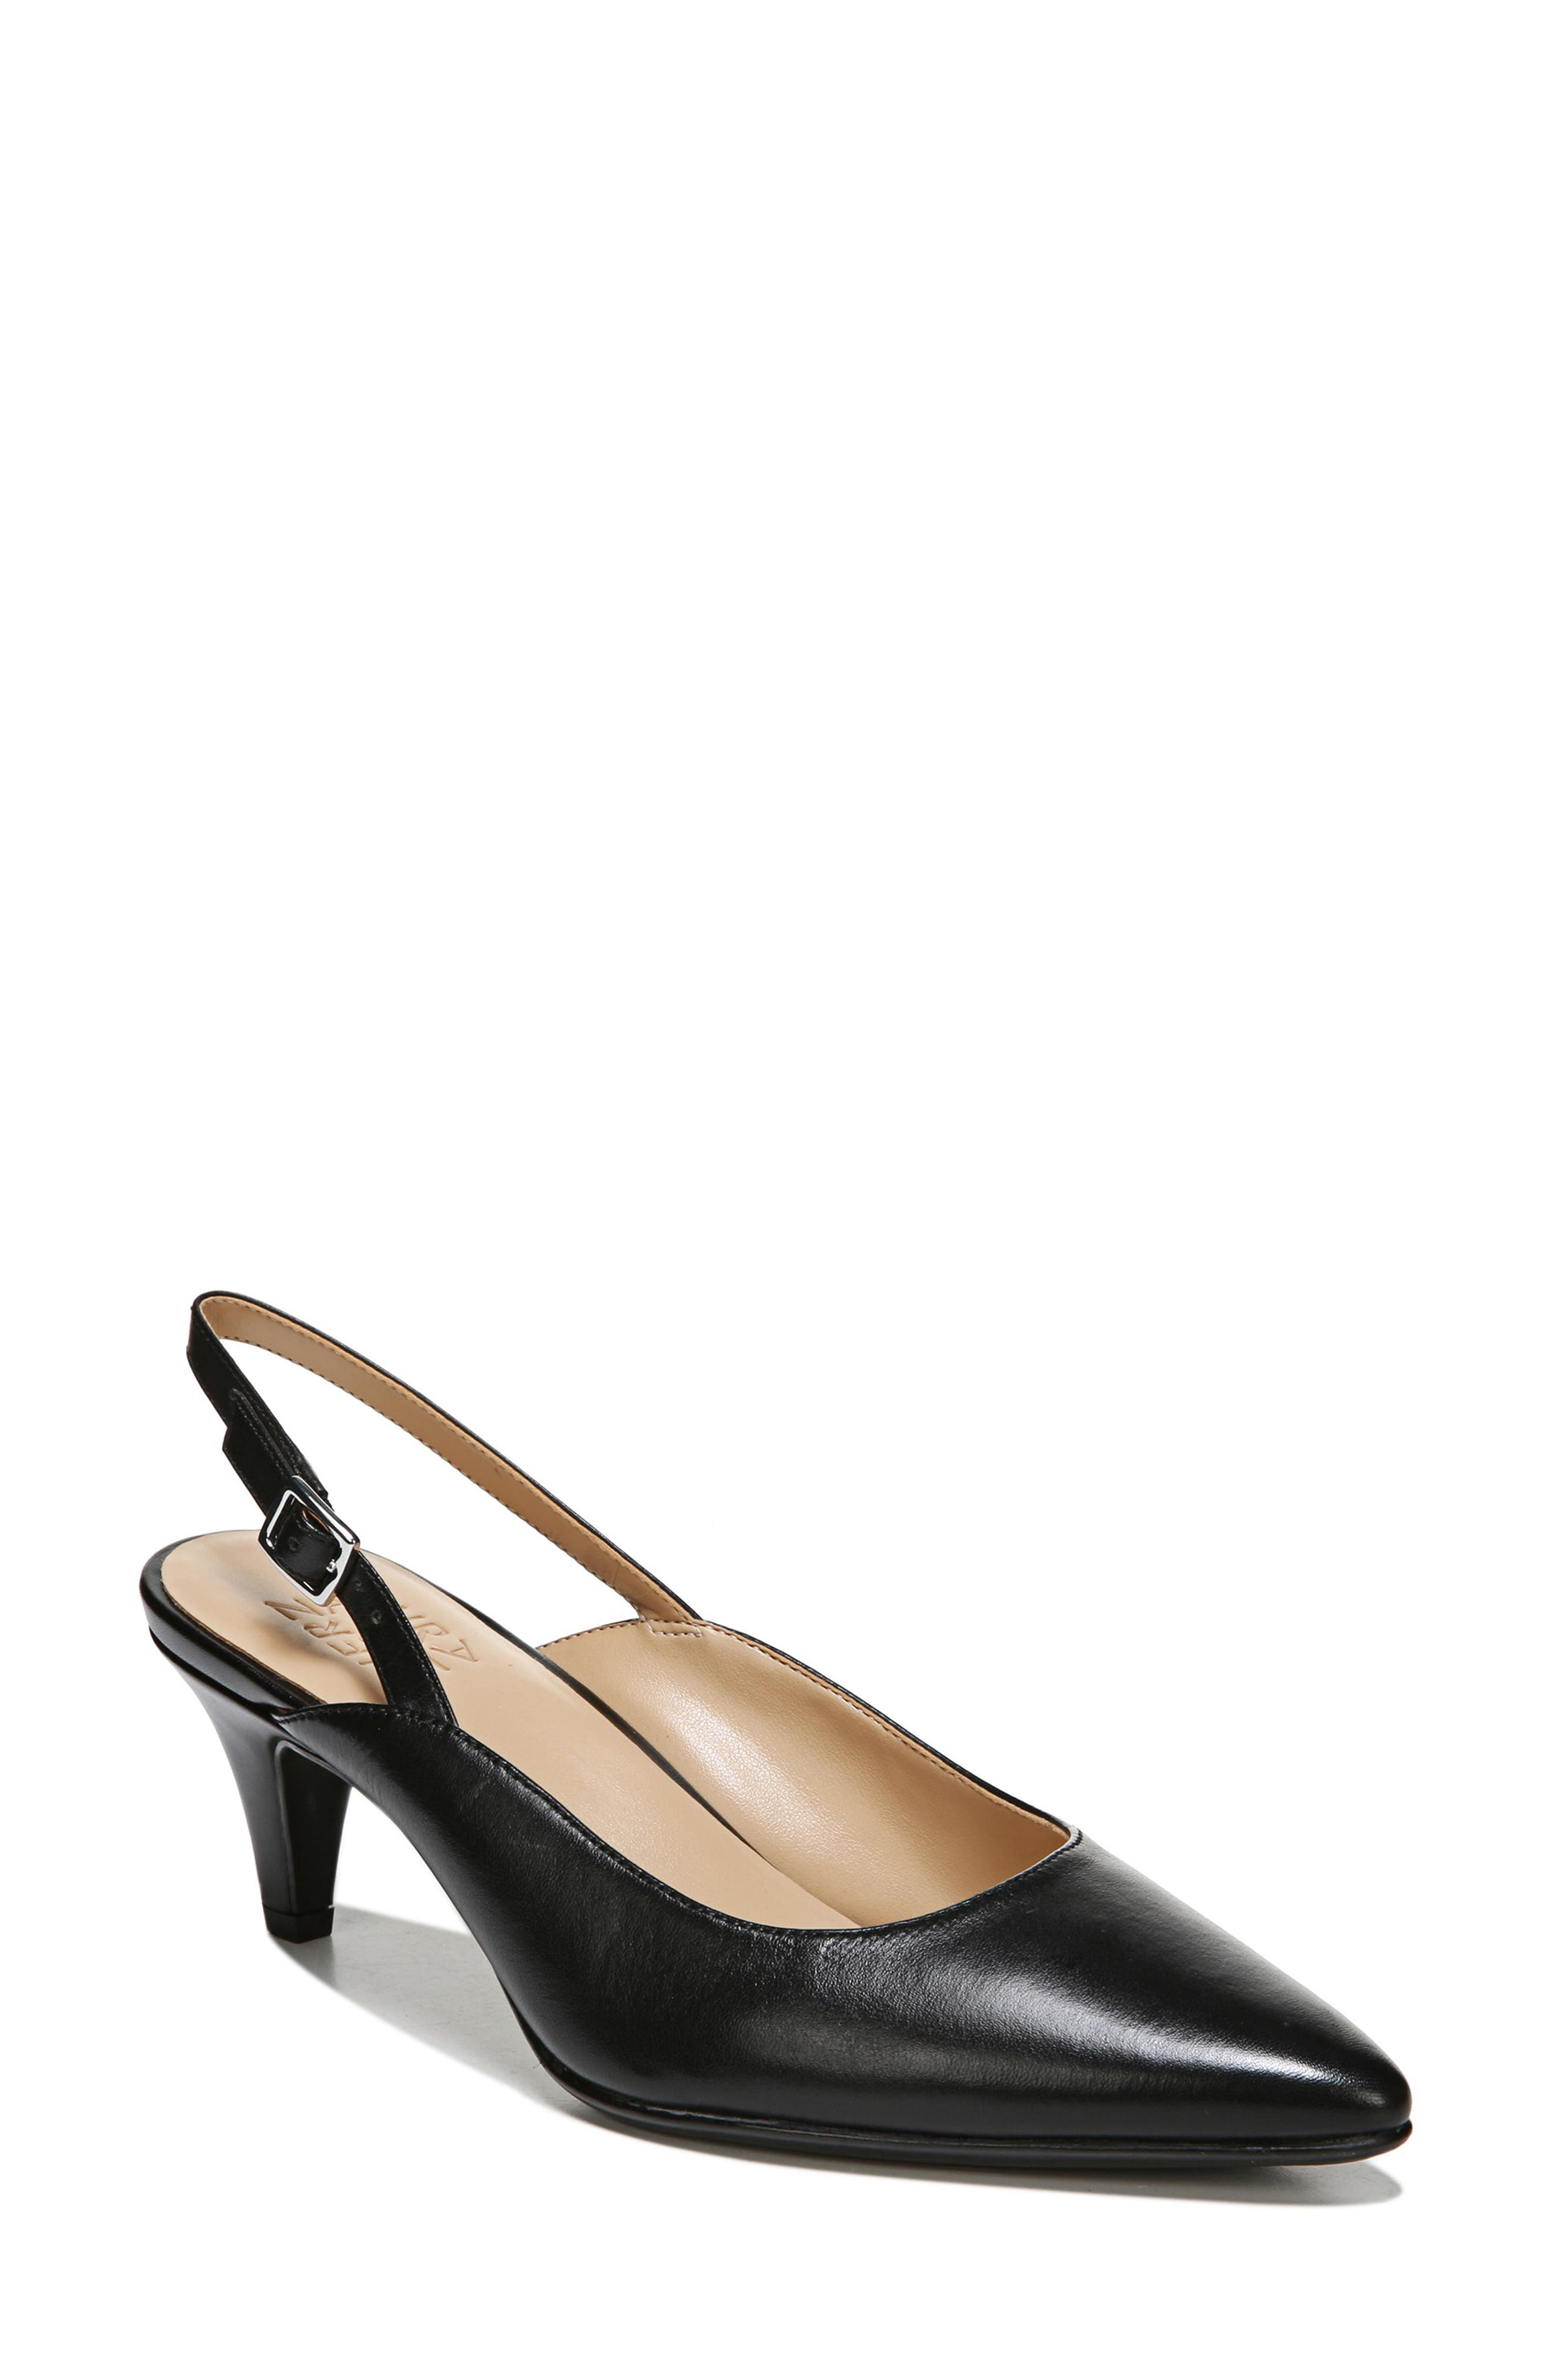 Naturalizer Baylee Slingback Pump, Black